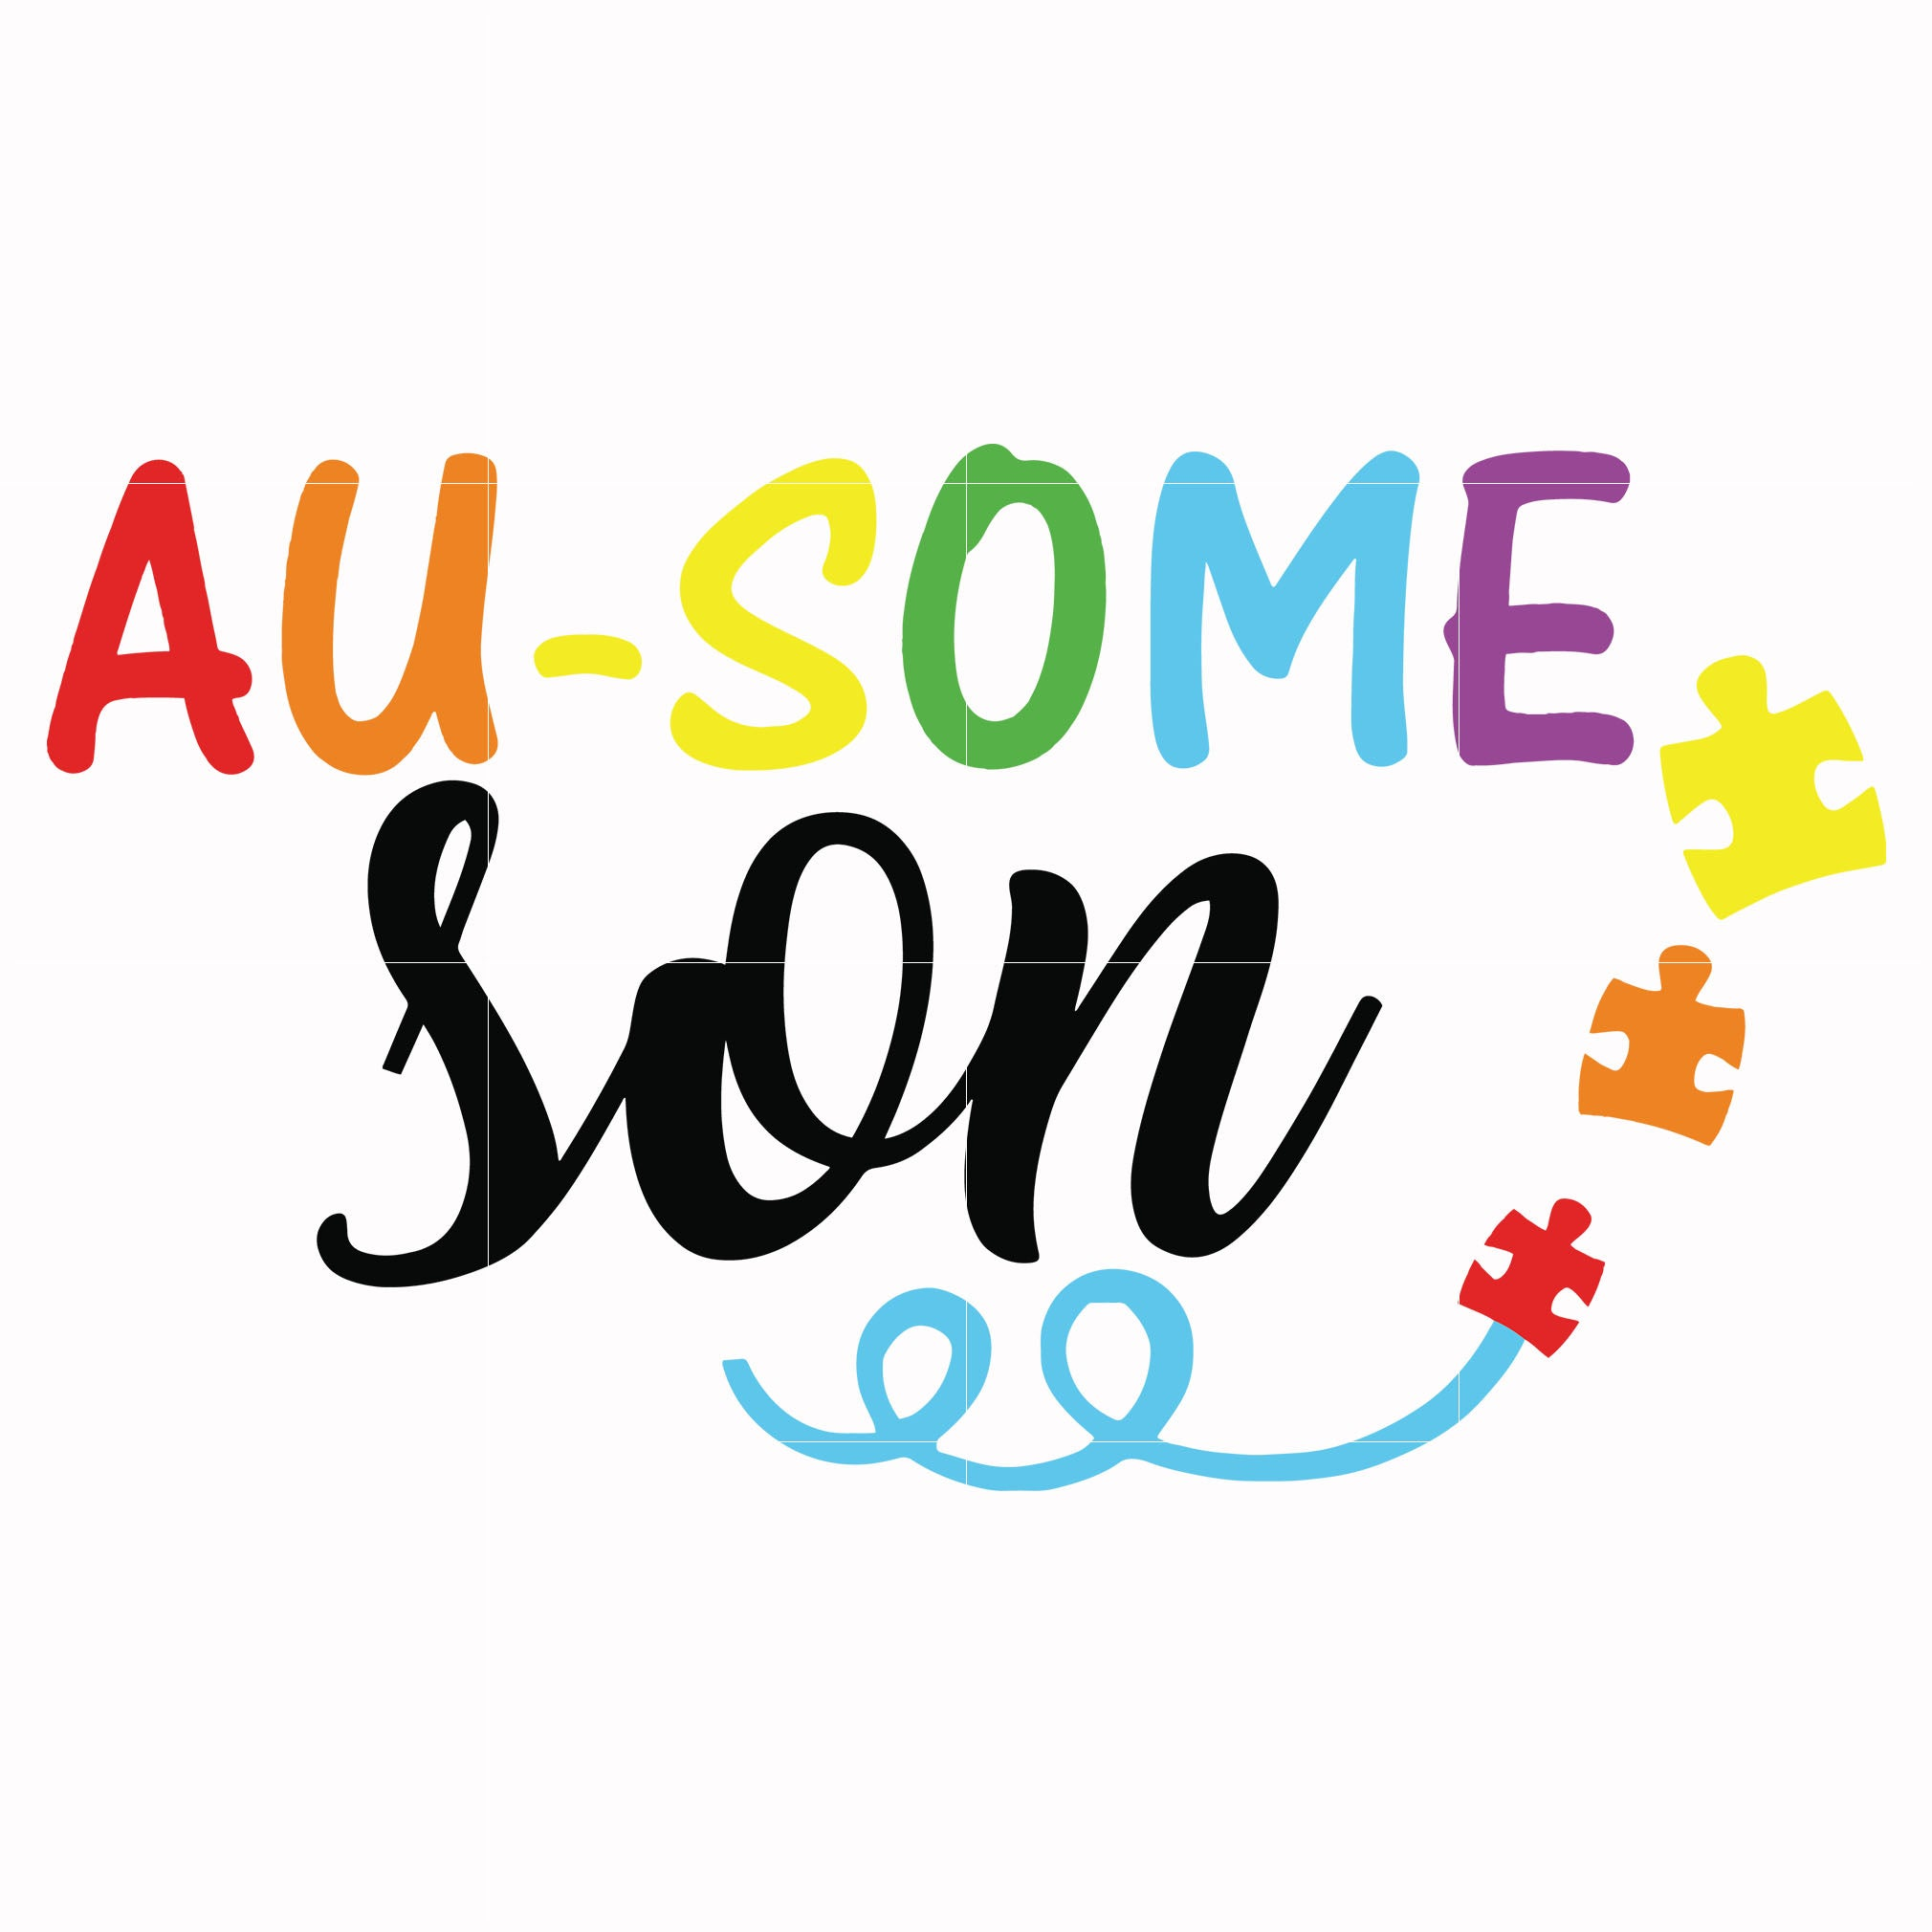 Au-some son svg, autism svg, autism awareness svg, dxf, eps, png digital file